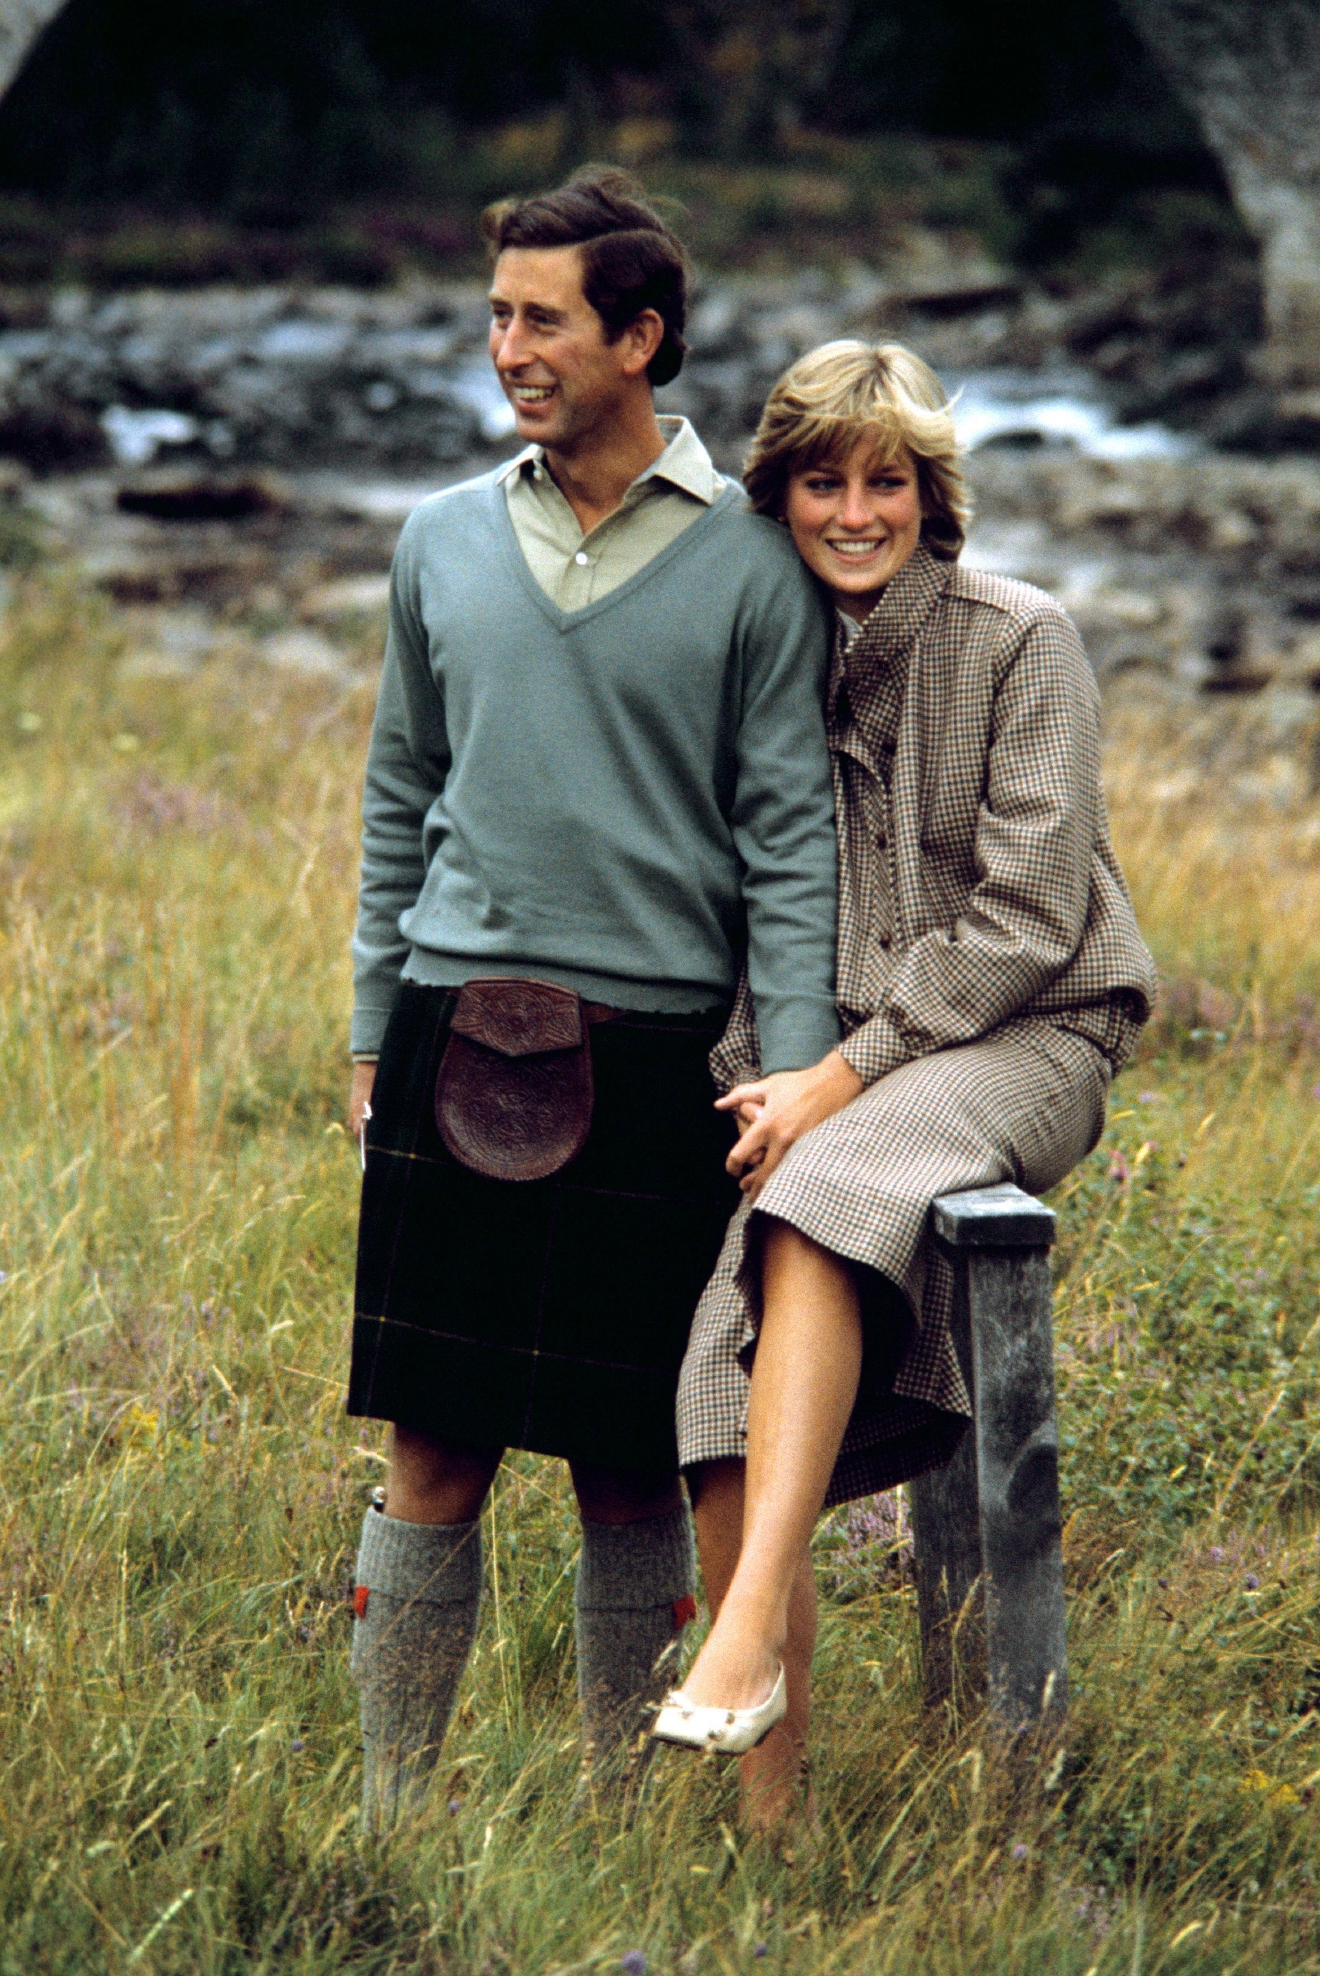 "FILE - In this Aug. 19, 1981 file photo, Britain's Prince Charles and Diana, Princess of Wales pose for photographers during their honeymoon in Balmoral, Scotland. This outfit is featured in an exhibition of 25 dresses and outfits worn by Diana entitled ""Diana: Her Fashion Story"" at Kensington Palace in London, opening on Friday, Feb. 24, 2017. (PA via AP, file)"